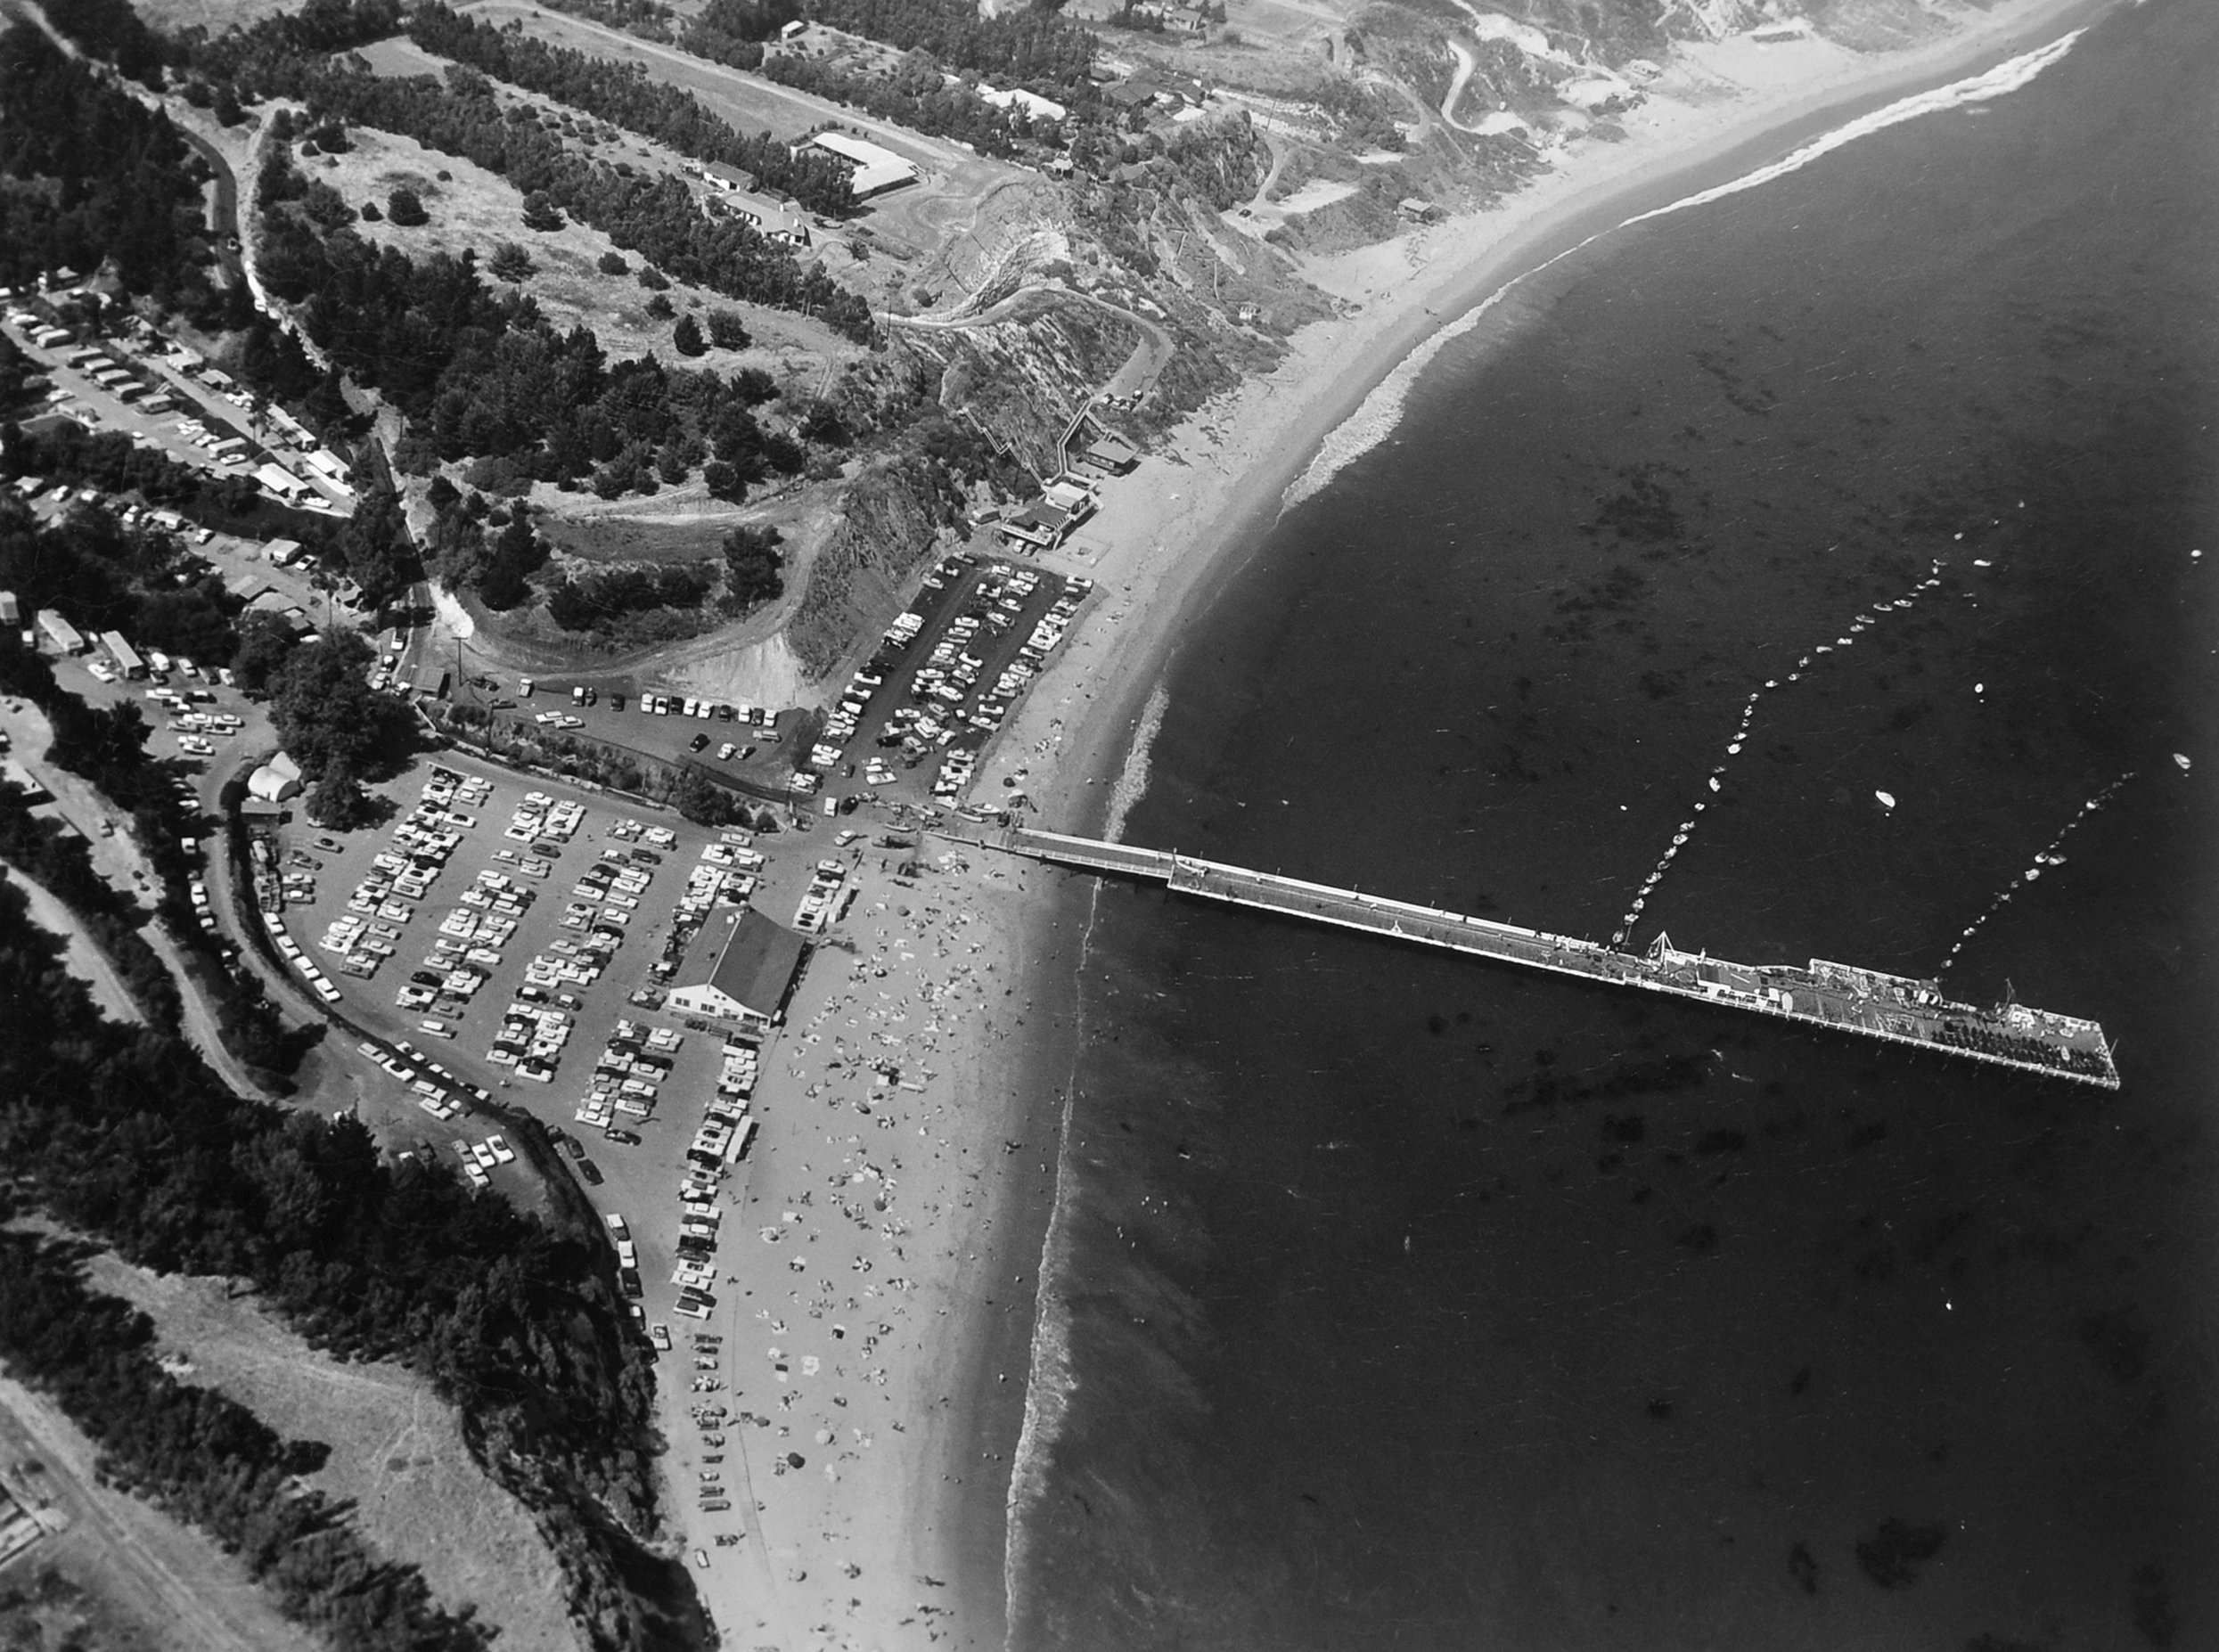 Paradise Cove in 1957. Courtesy Bill Beebe Collection.